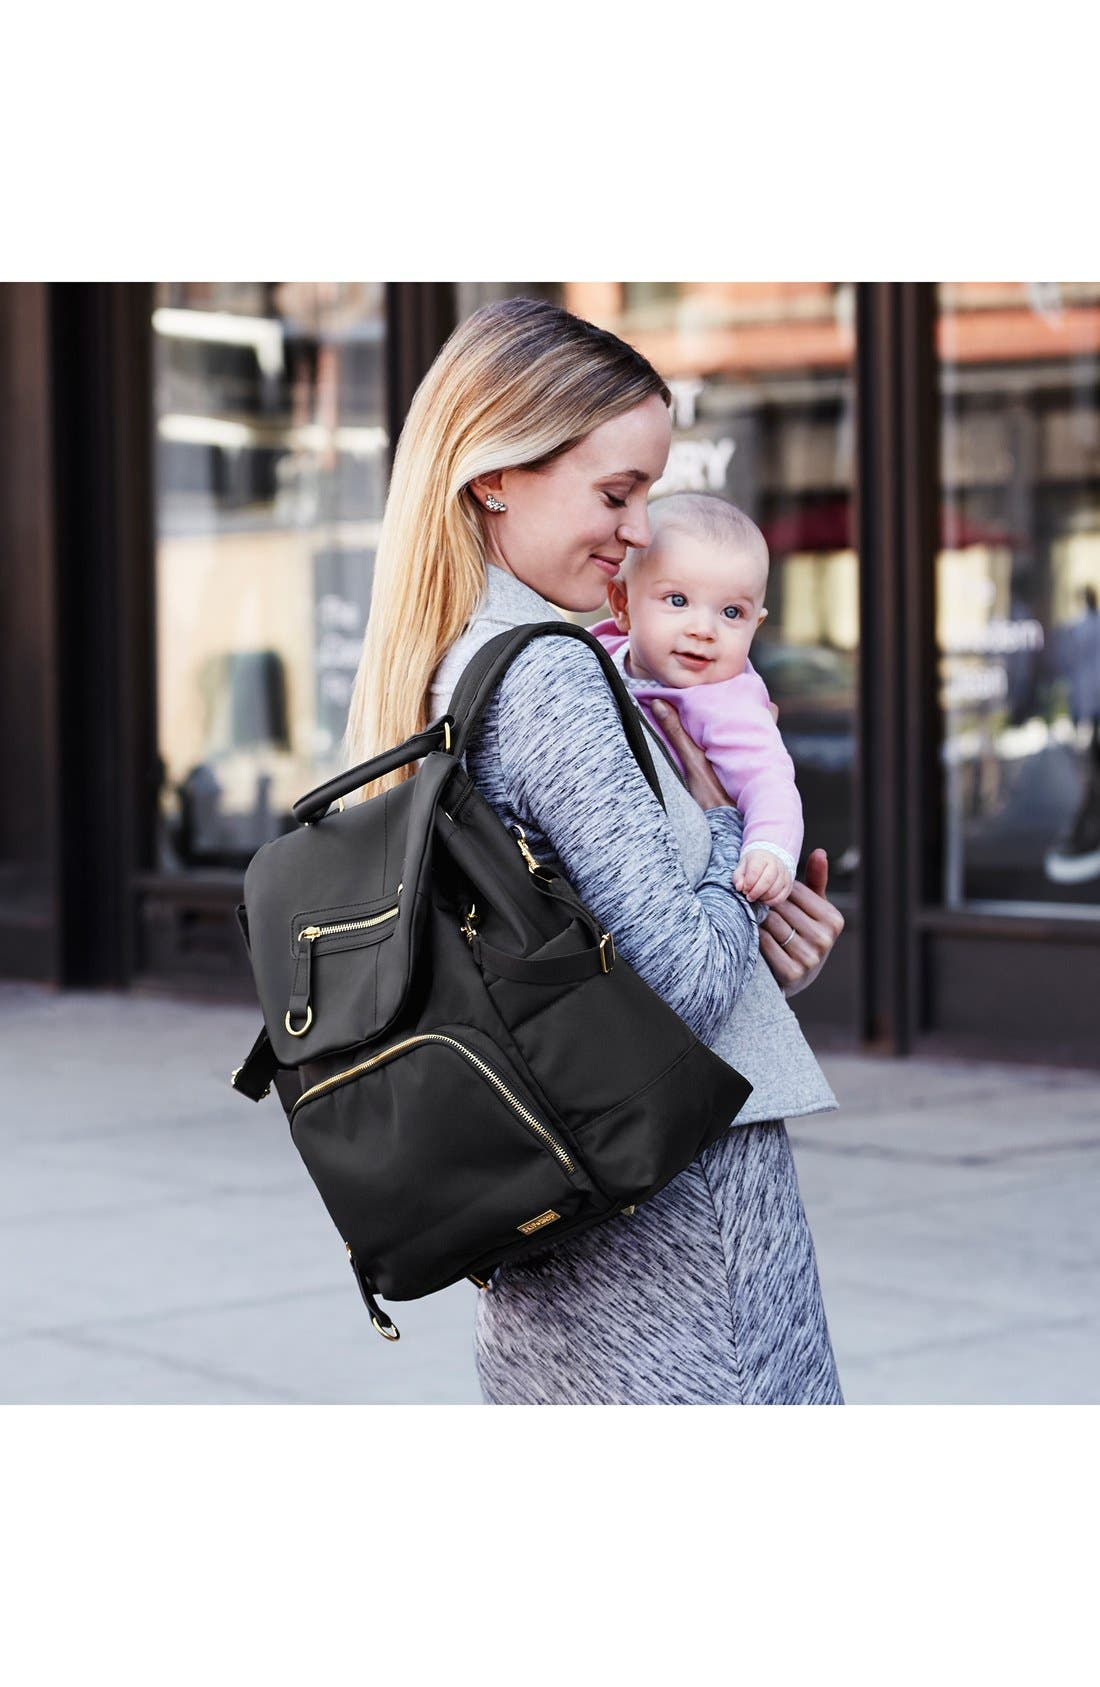 'Chelsea' Diaper Bag Backpack,                             Alternate thumbnail 4, color,                             Black